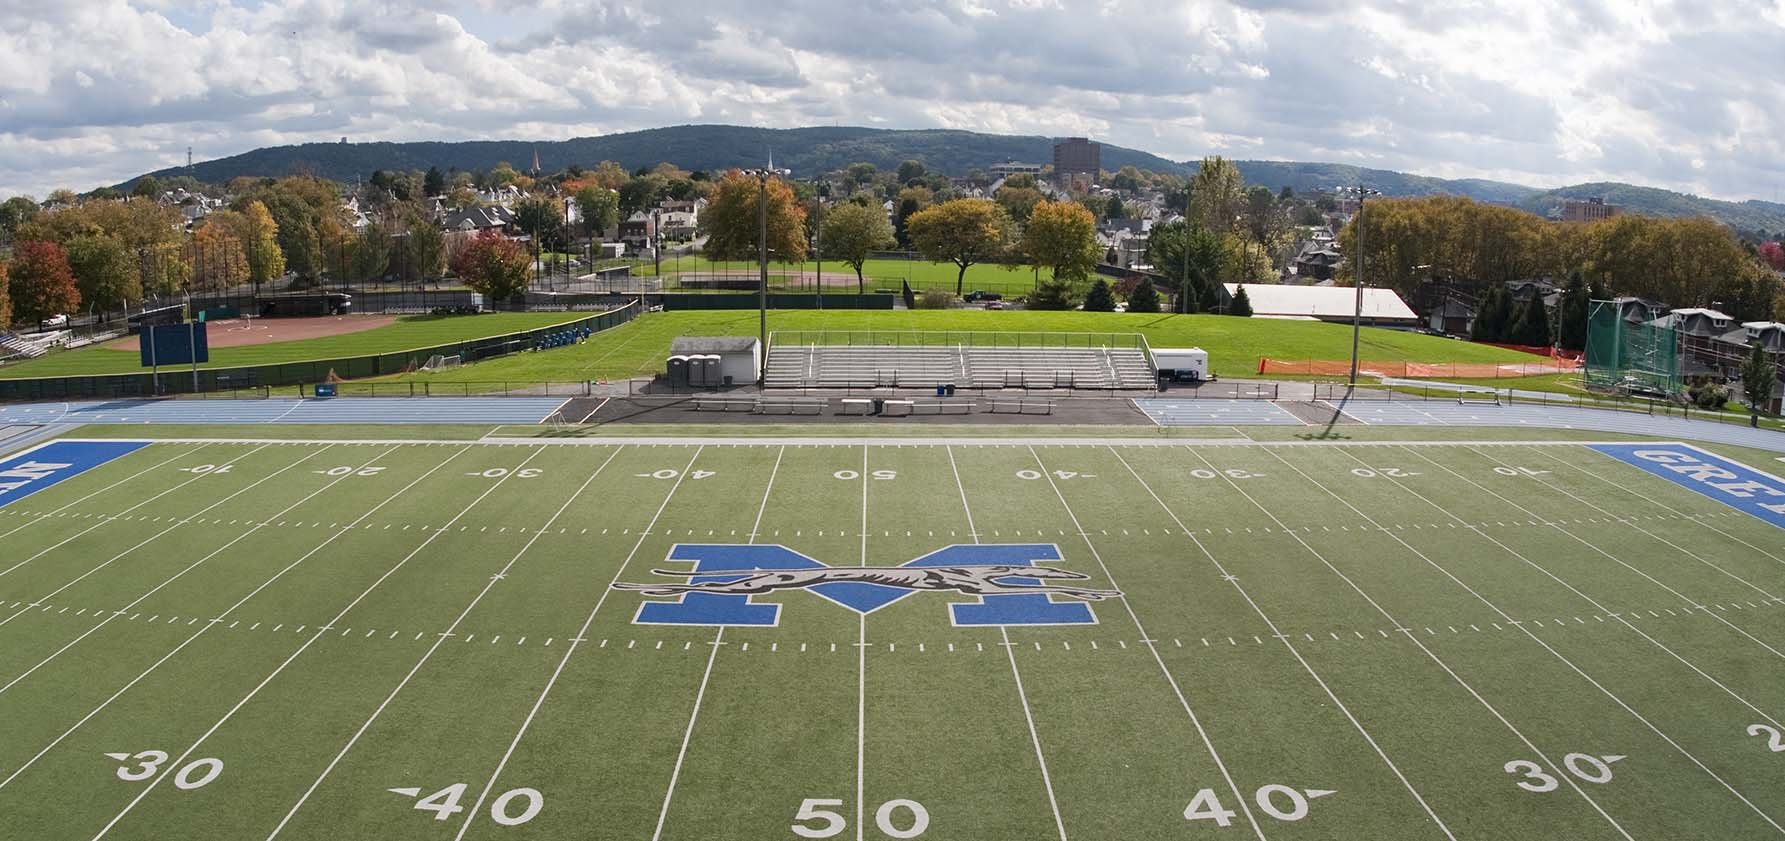 A view overlooking the Steel Field Athletics Complex includes South Mountain in the distance.